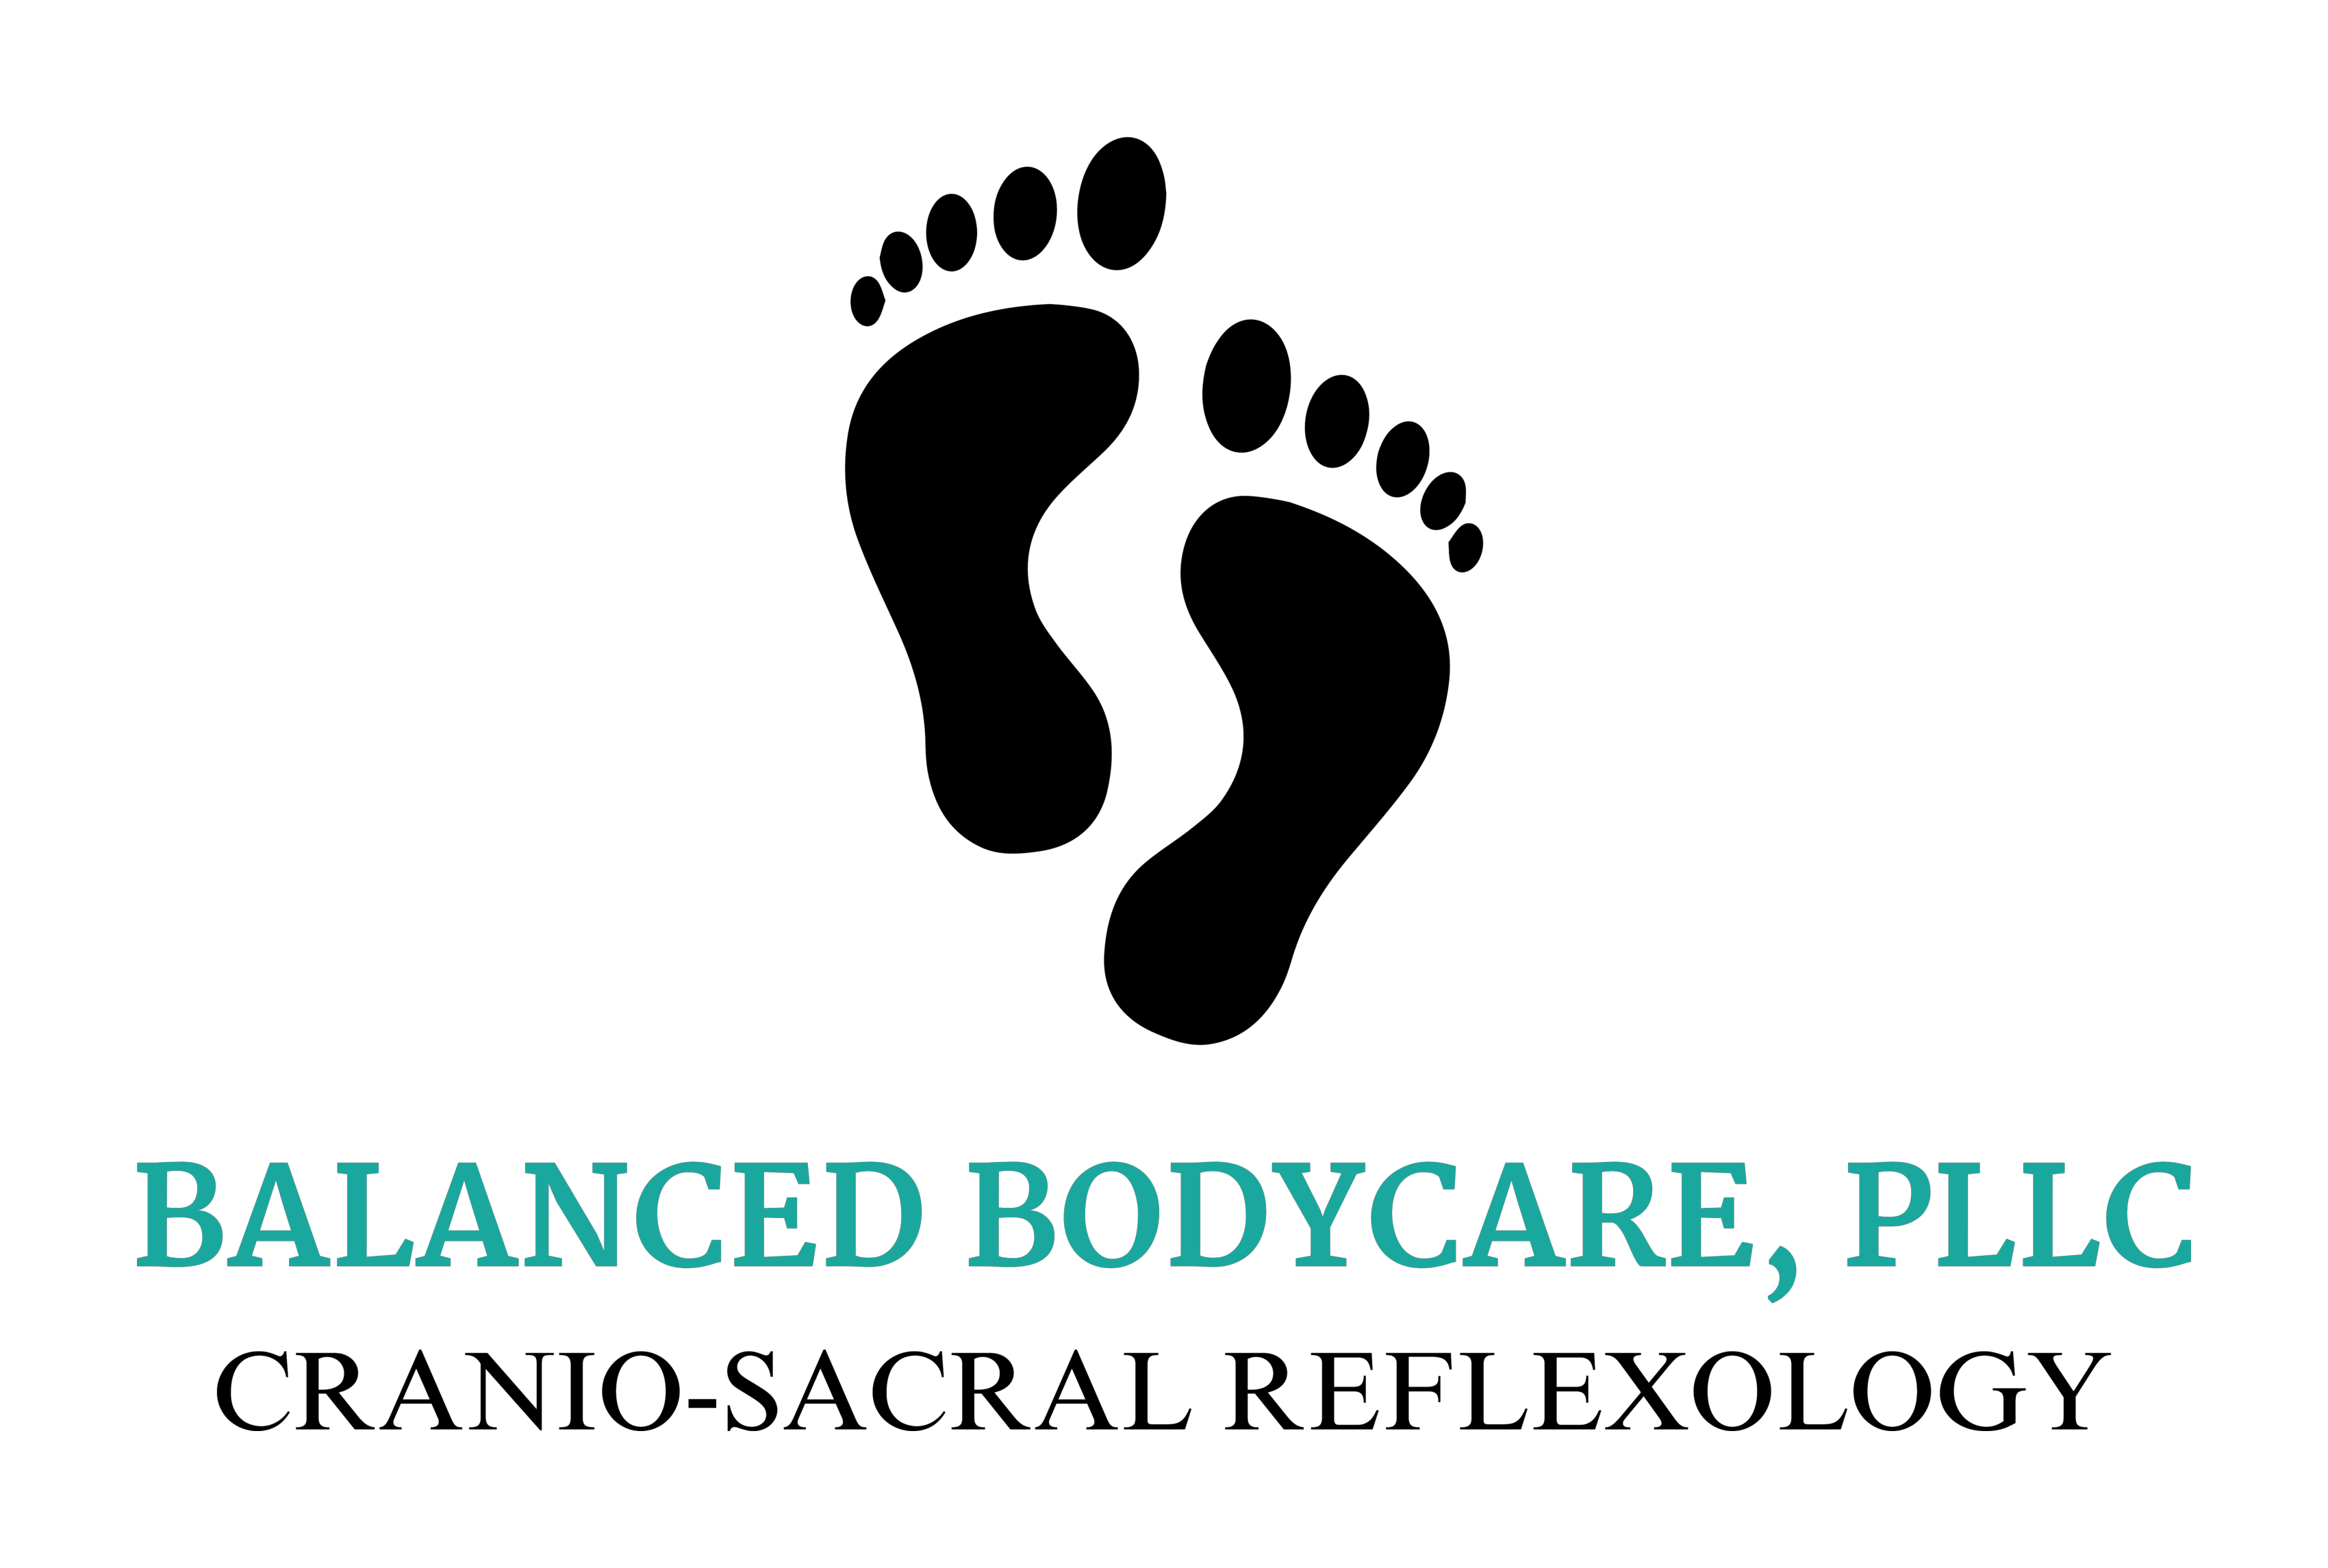 Balanced Bodycare, PLLC